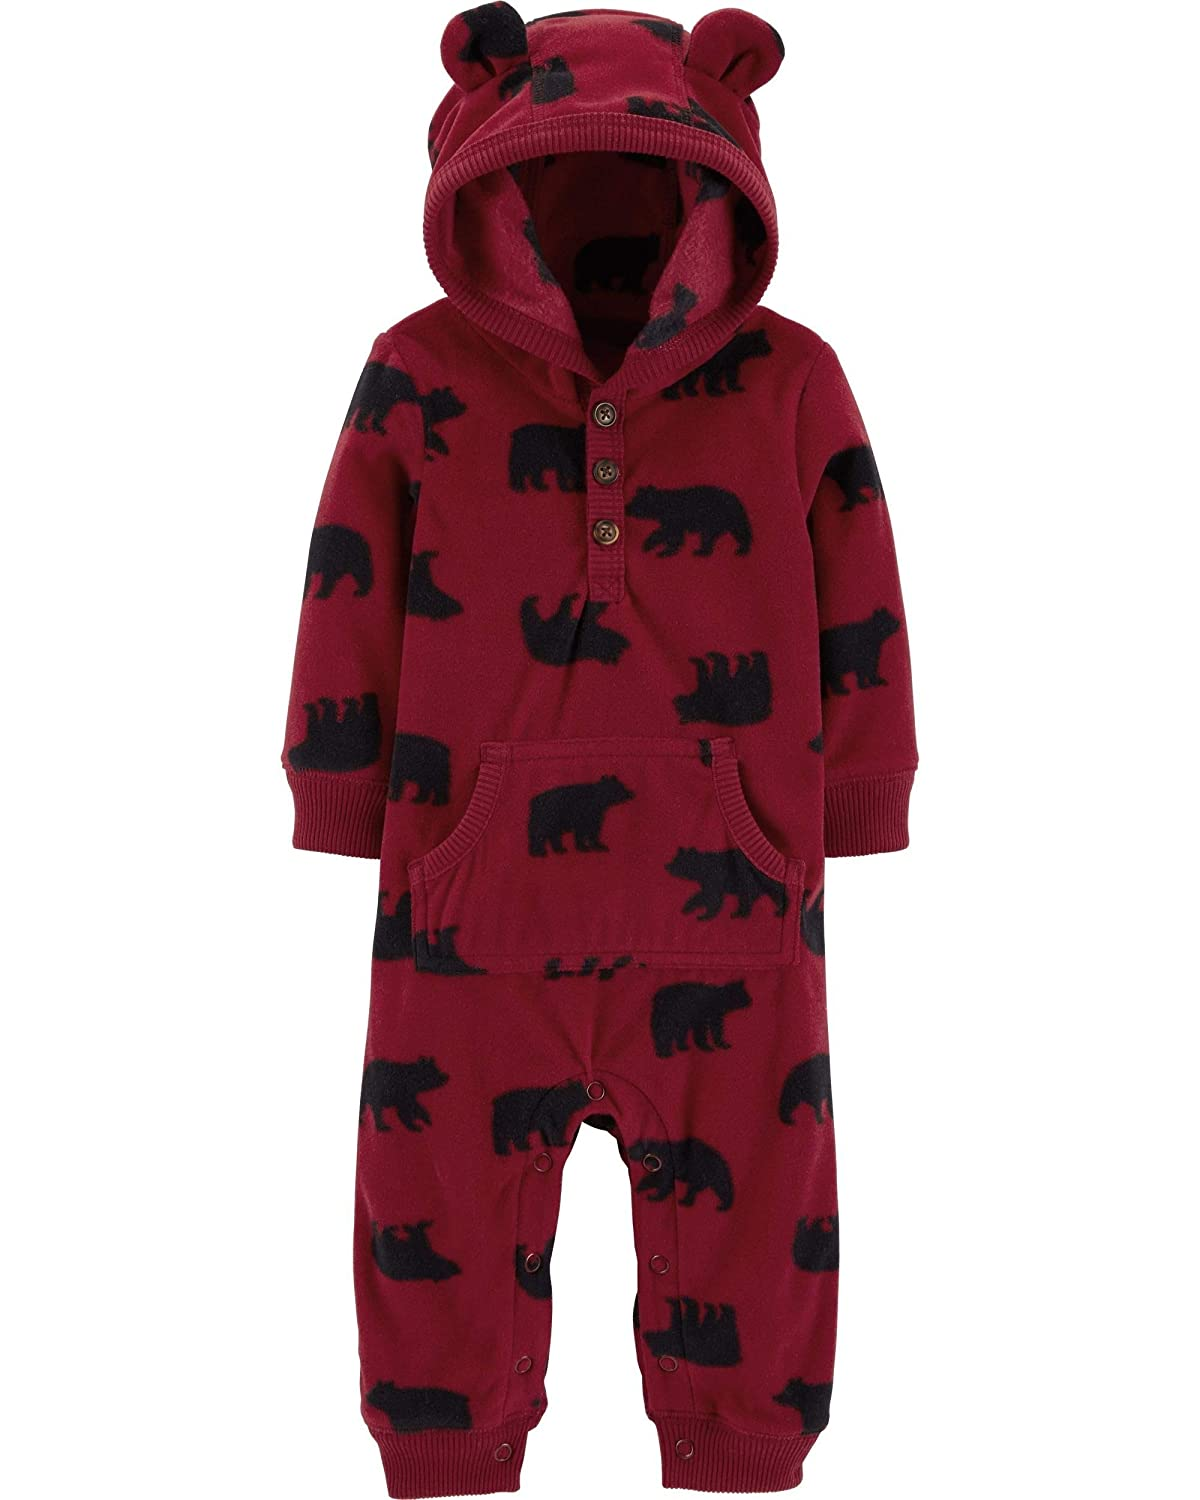 Carters Baby Boys 1 Pc 118g656